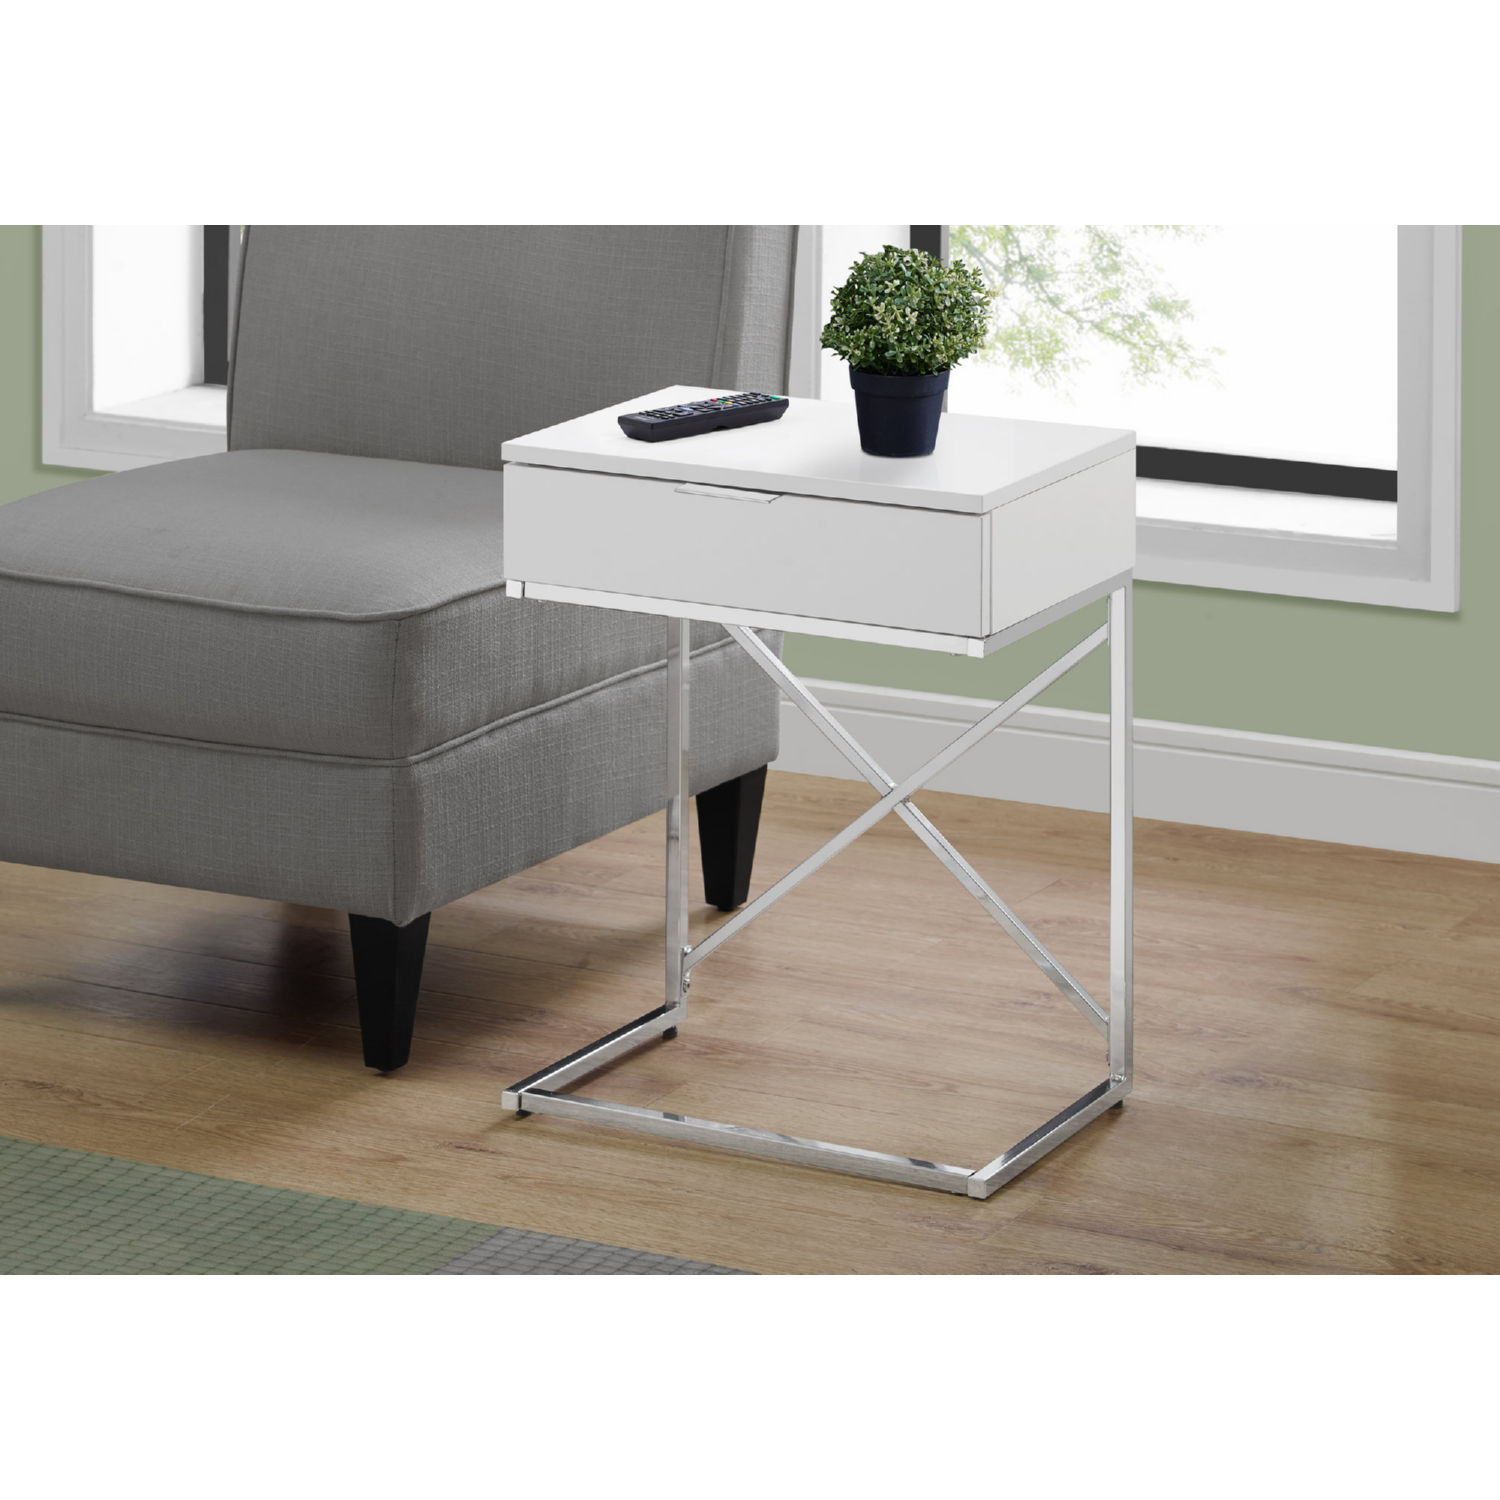 monrach i 3470 24 h accent table in glossy white chrome metal